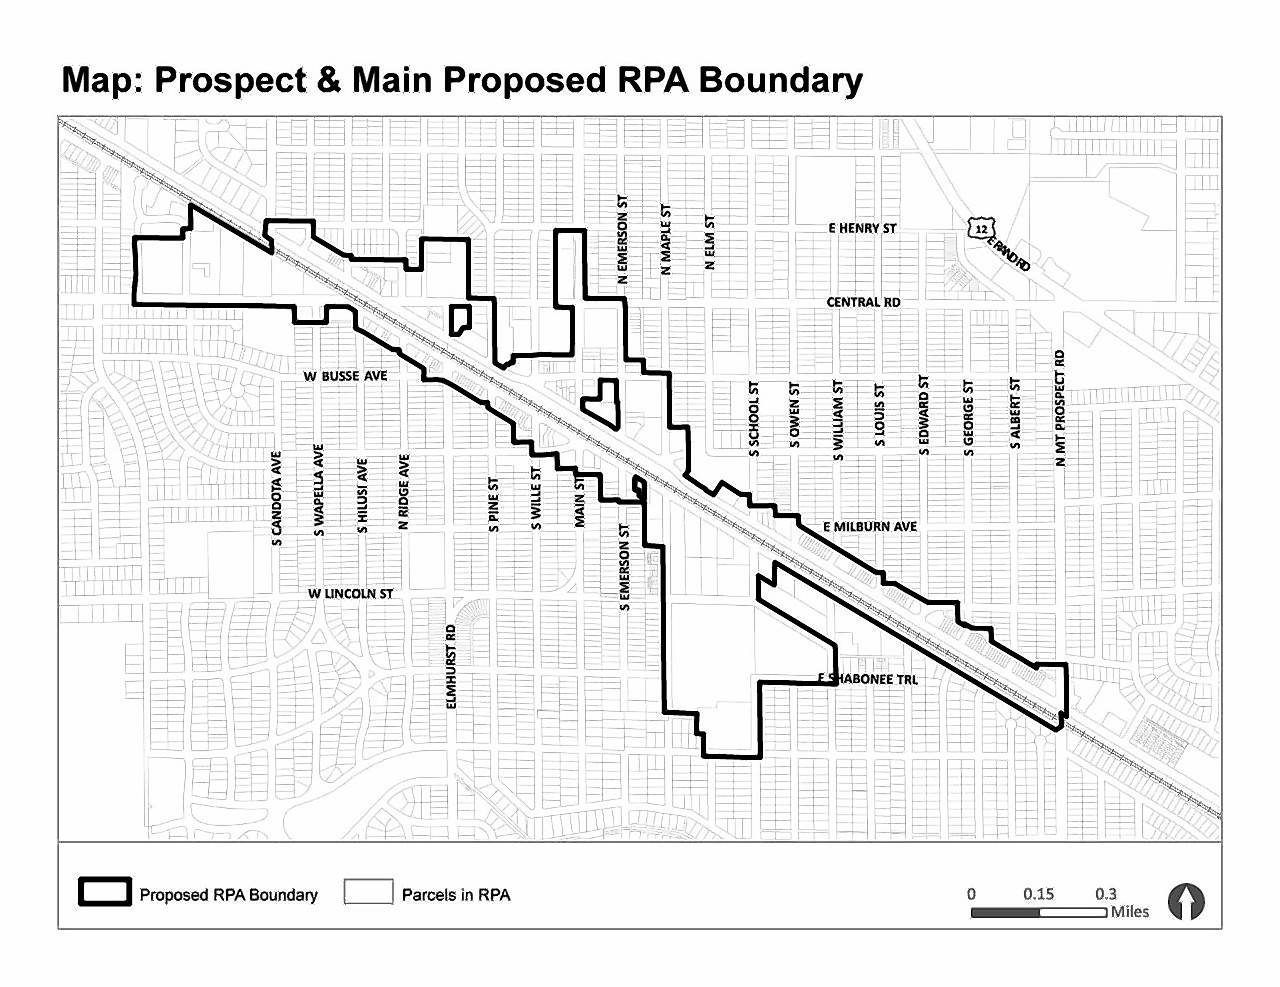 These are boundaries of the tax increment finanicing district in dispute between Mount Prospect and the Northwest Suburban High School District 214.